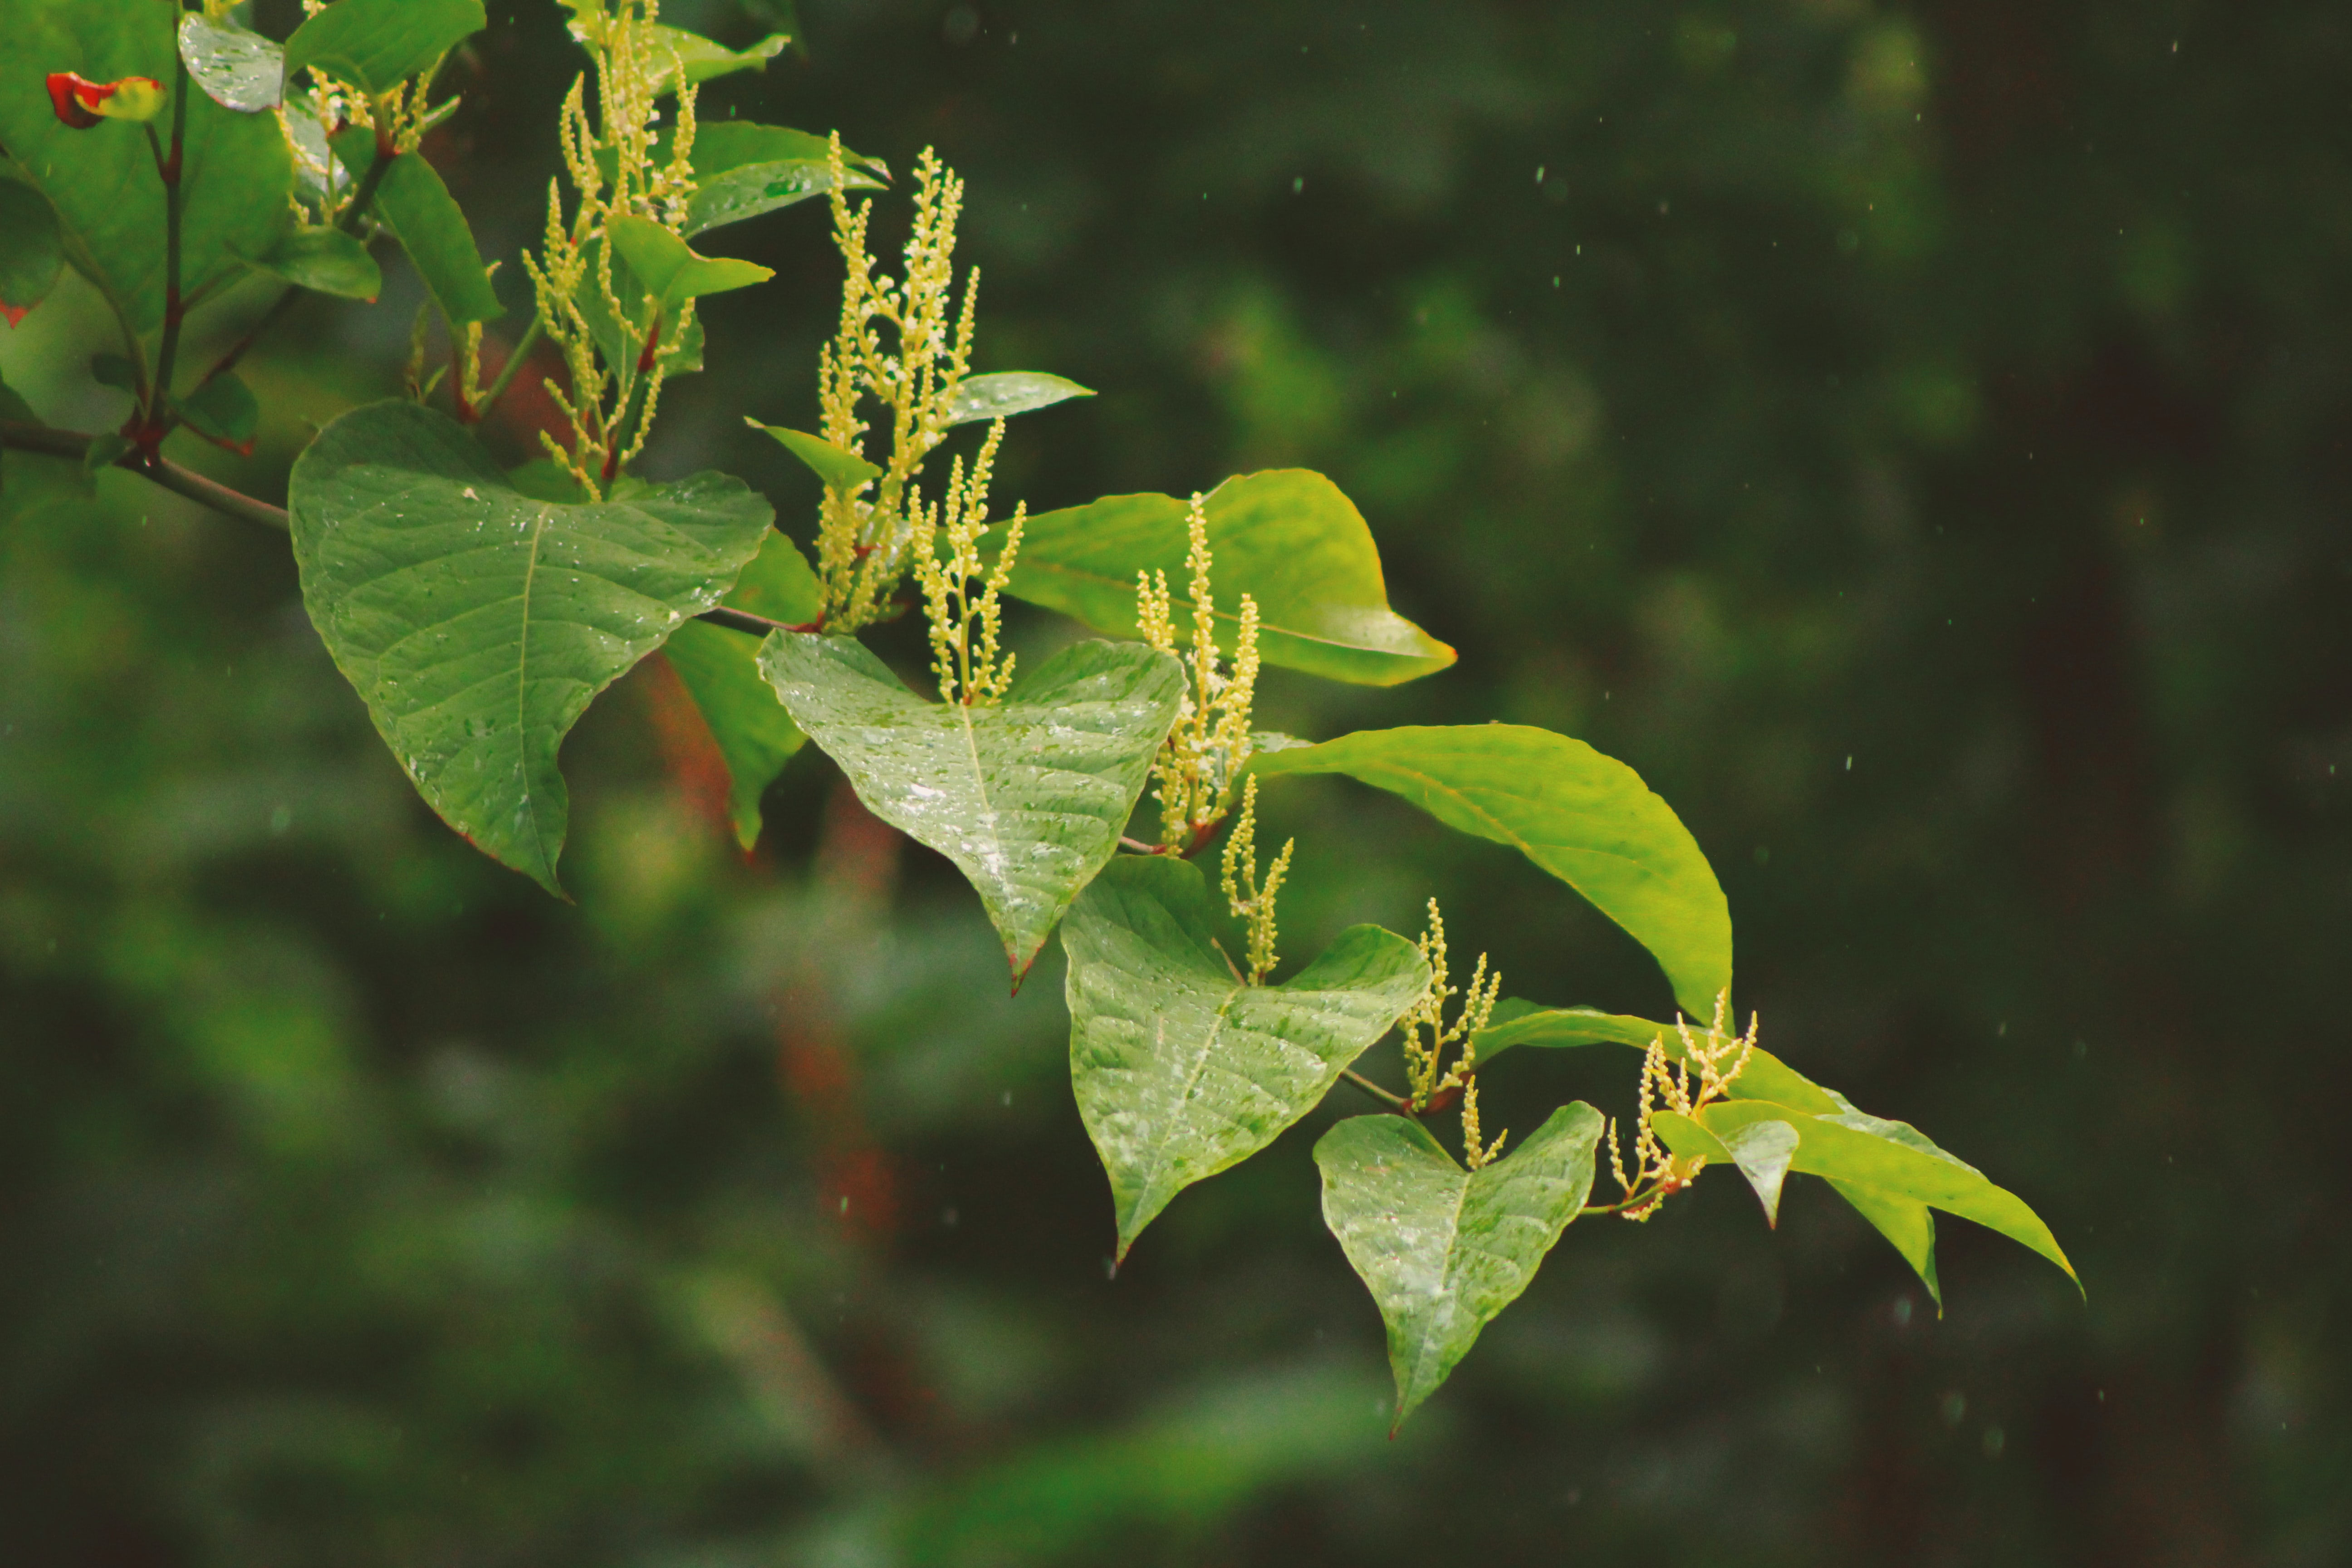 selective focus photography of green leafed plant at daytime